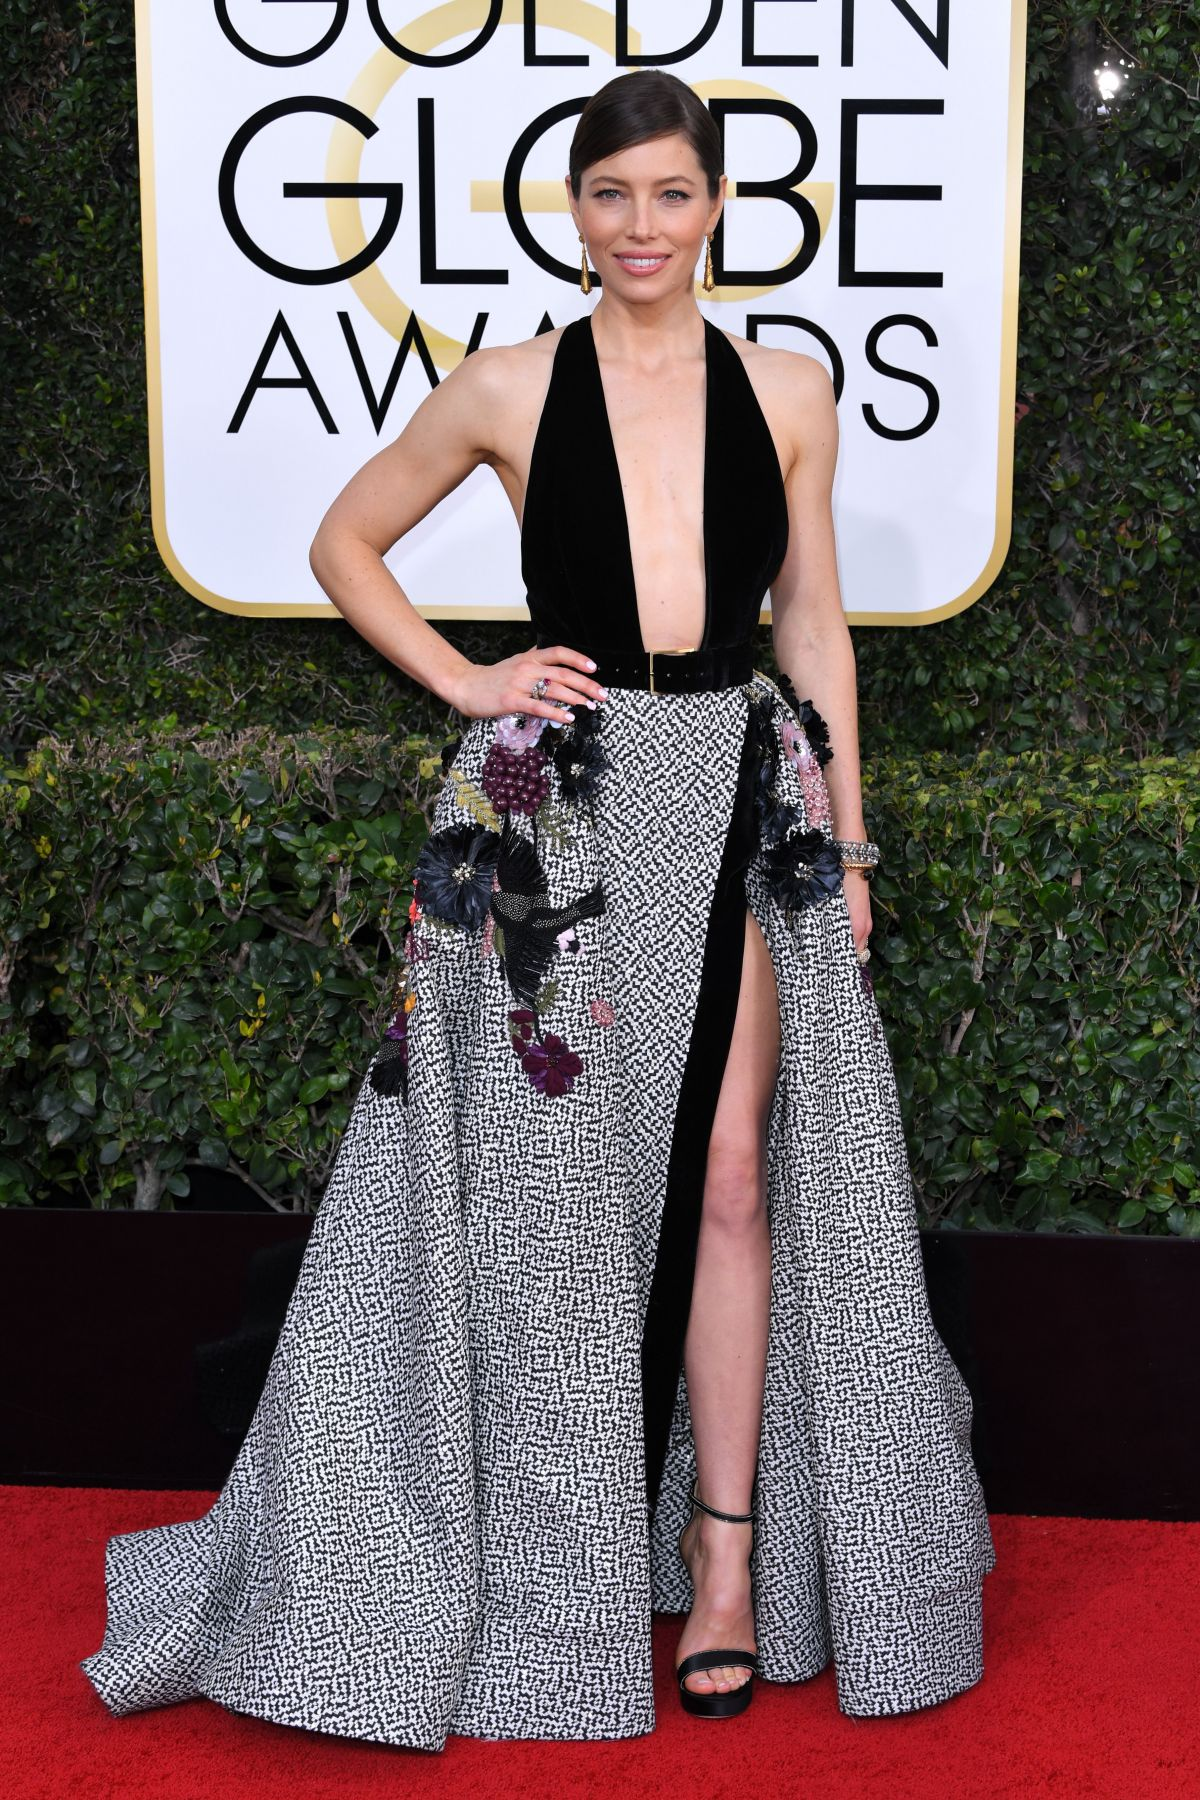 JESSICA BIEL at 74th Annual Golden Globe Awards in Beverly Hills 01/08/2017